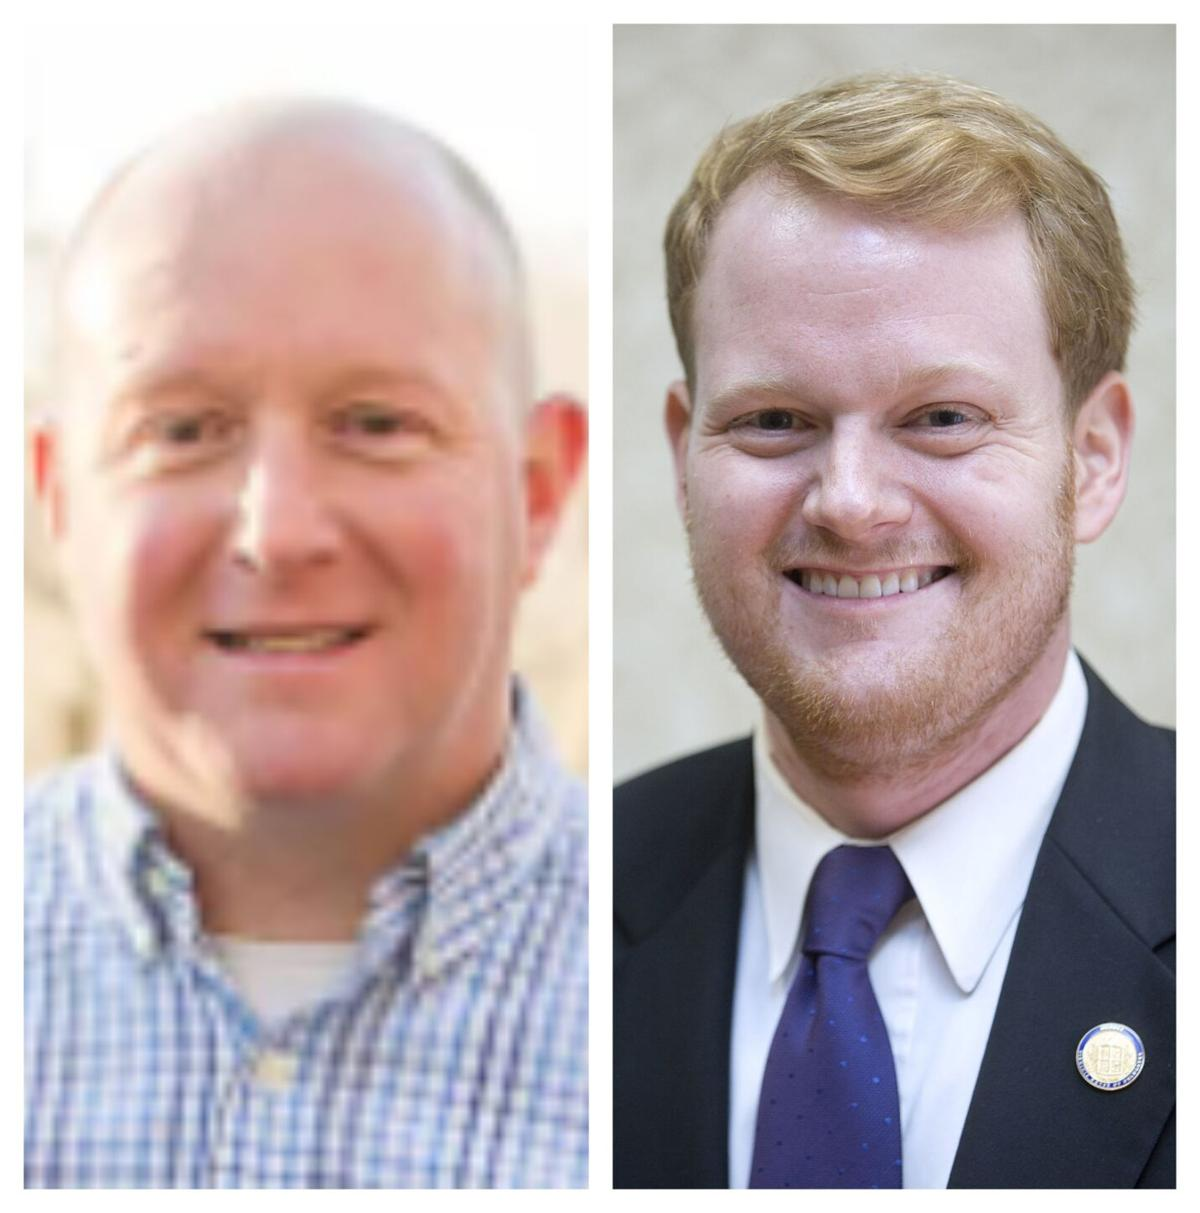 12th District candidates